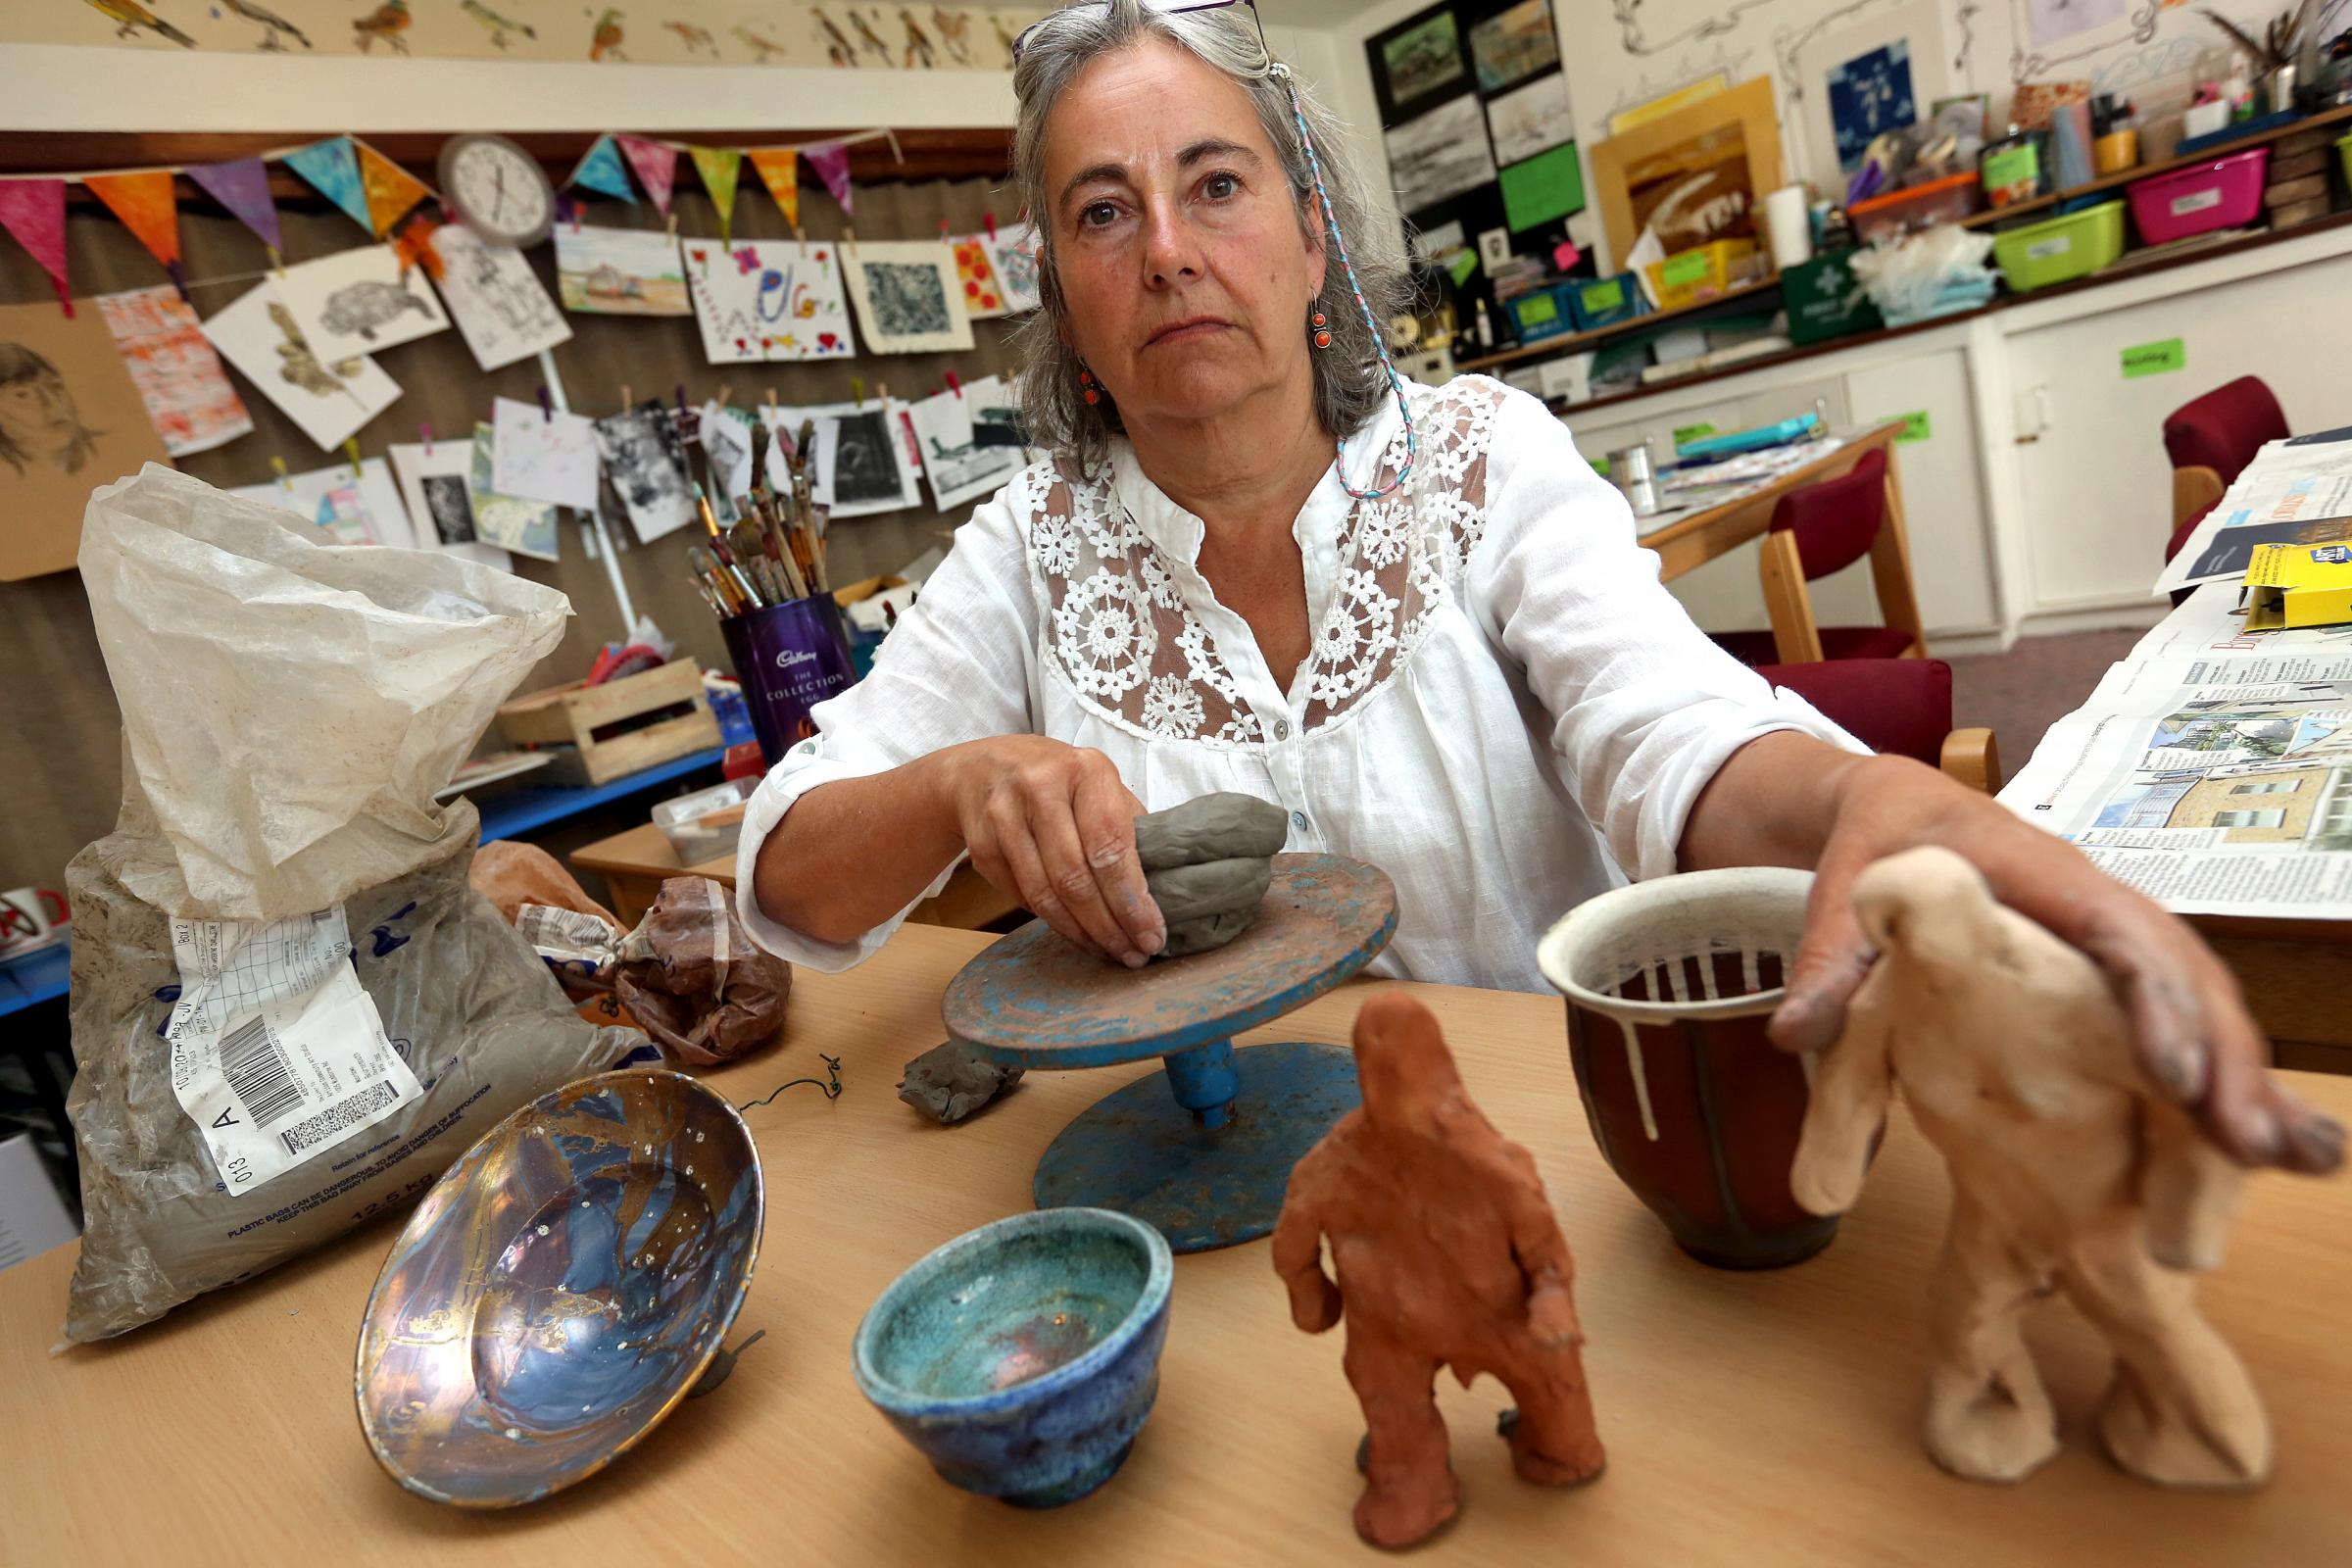 Pauline Stanley, pictured, and her partner Tim Russell are looking for a new venue for their community ceramics studio or they face loosing their Grants for Arts funding.